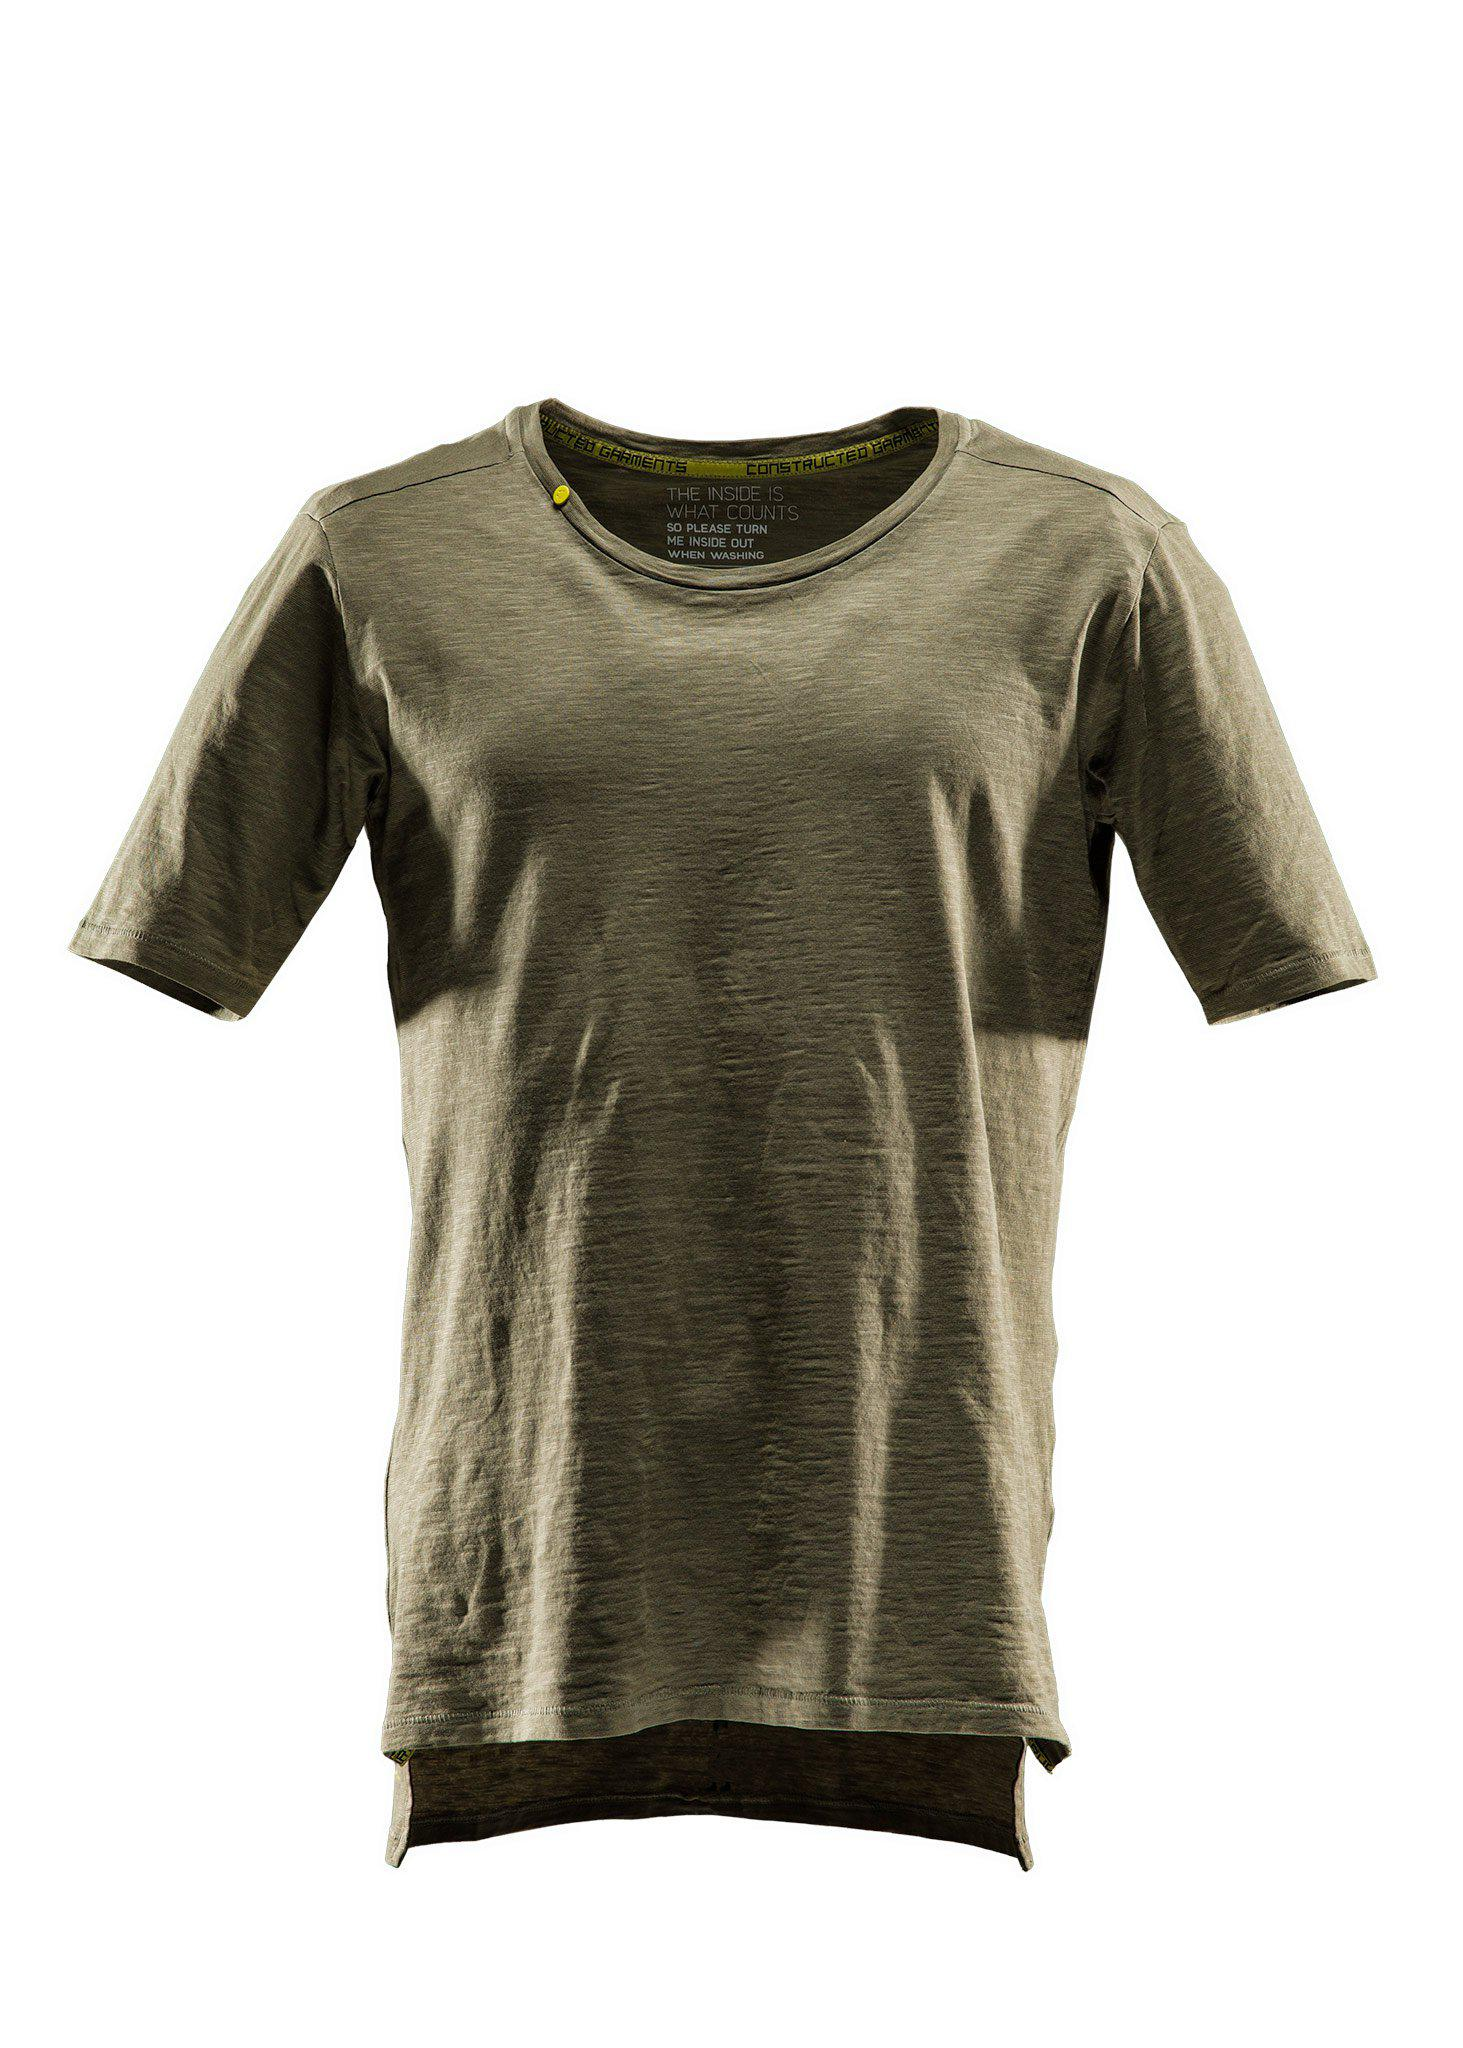 Comfort tee SS, T-shirt short sleeve, Burnt olive green, XS